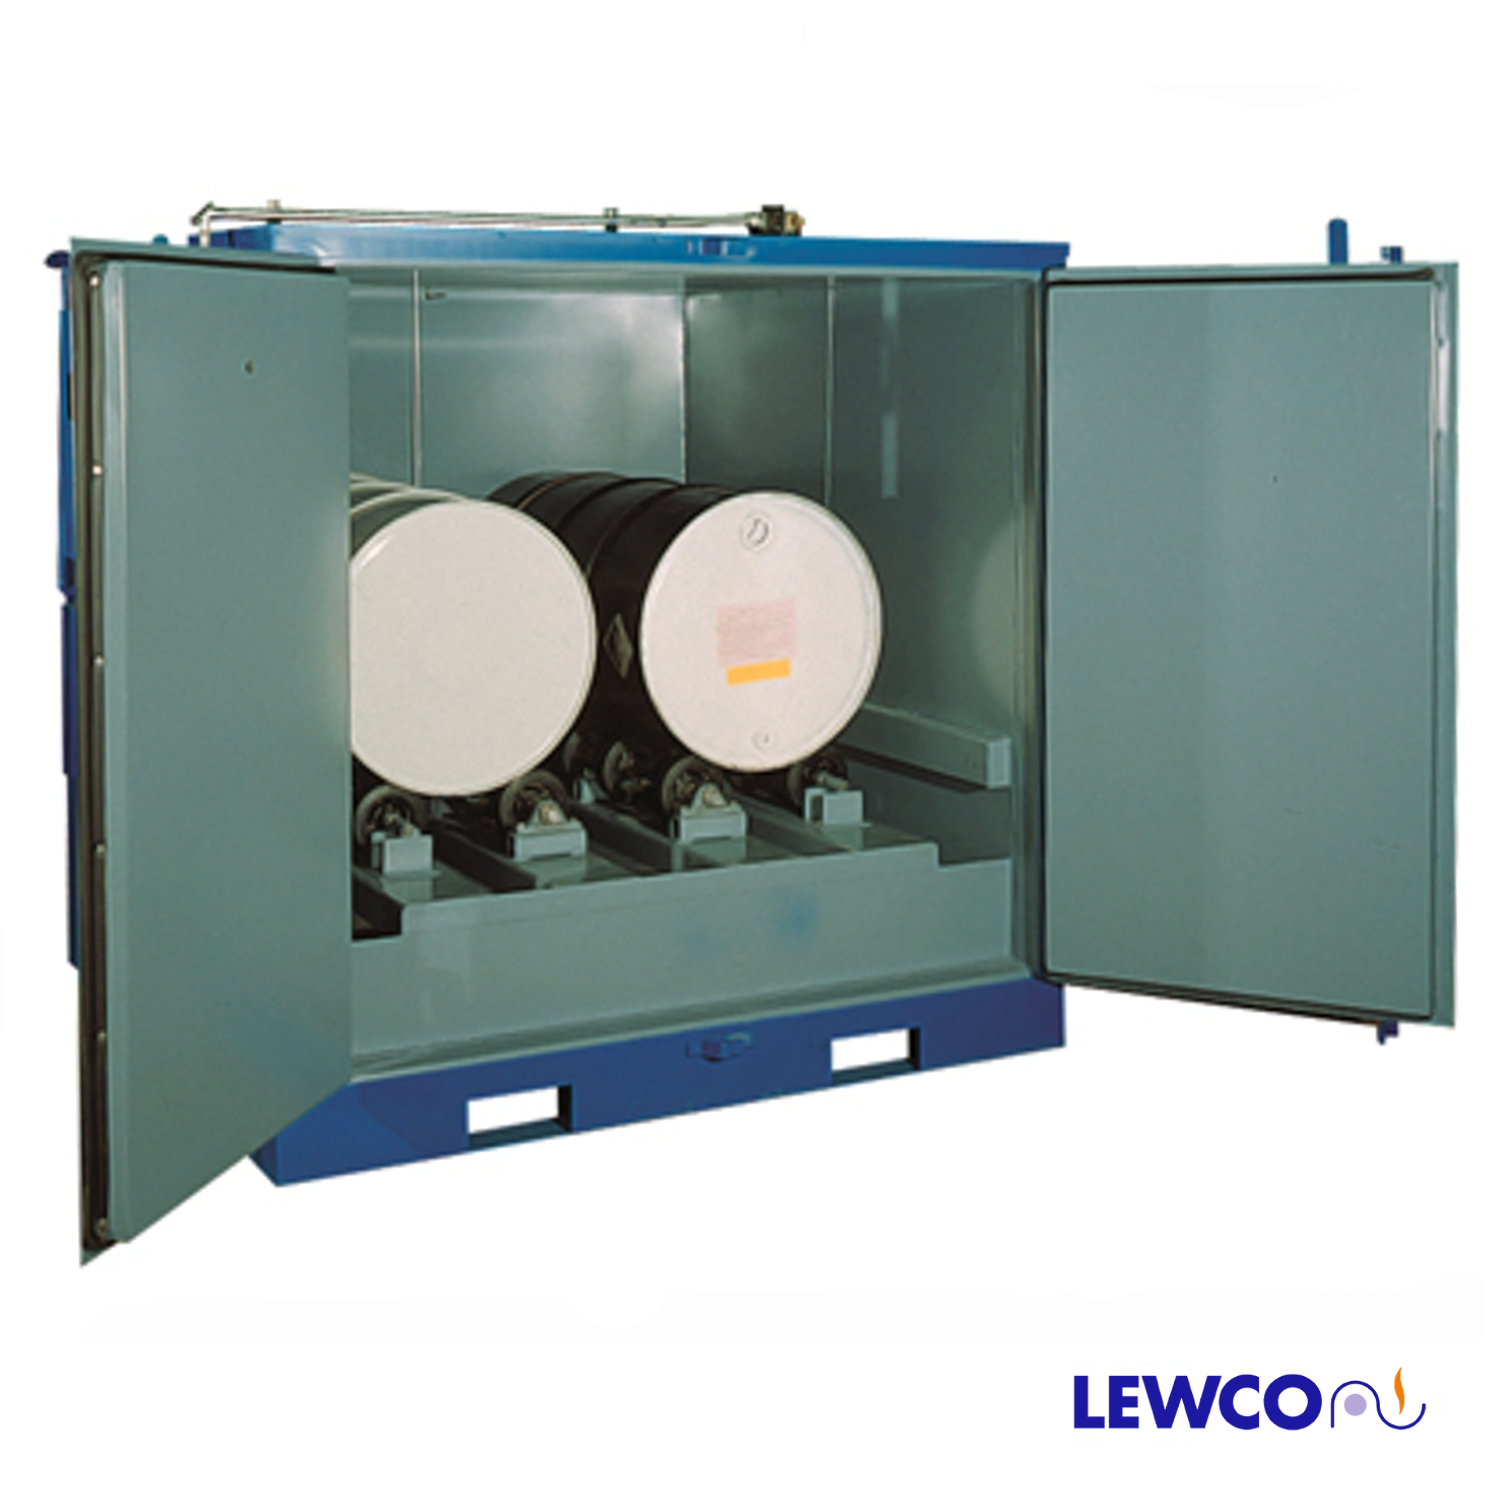 Electric Drum Heating Cabinet with Rotator – Lewco Ovens